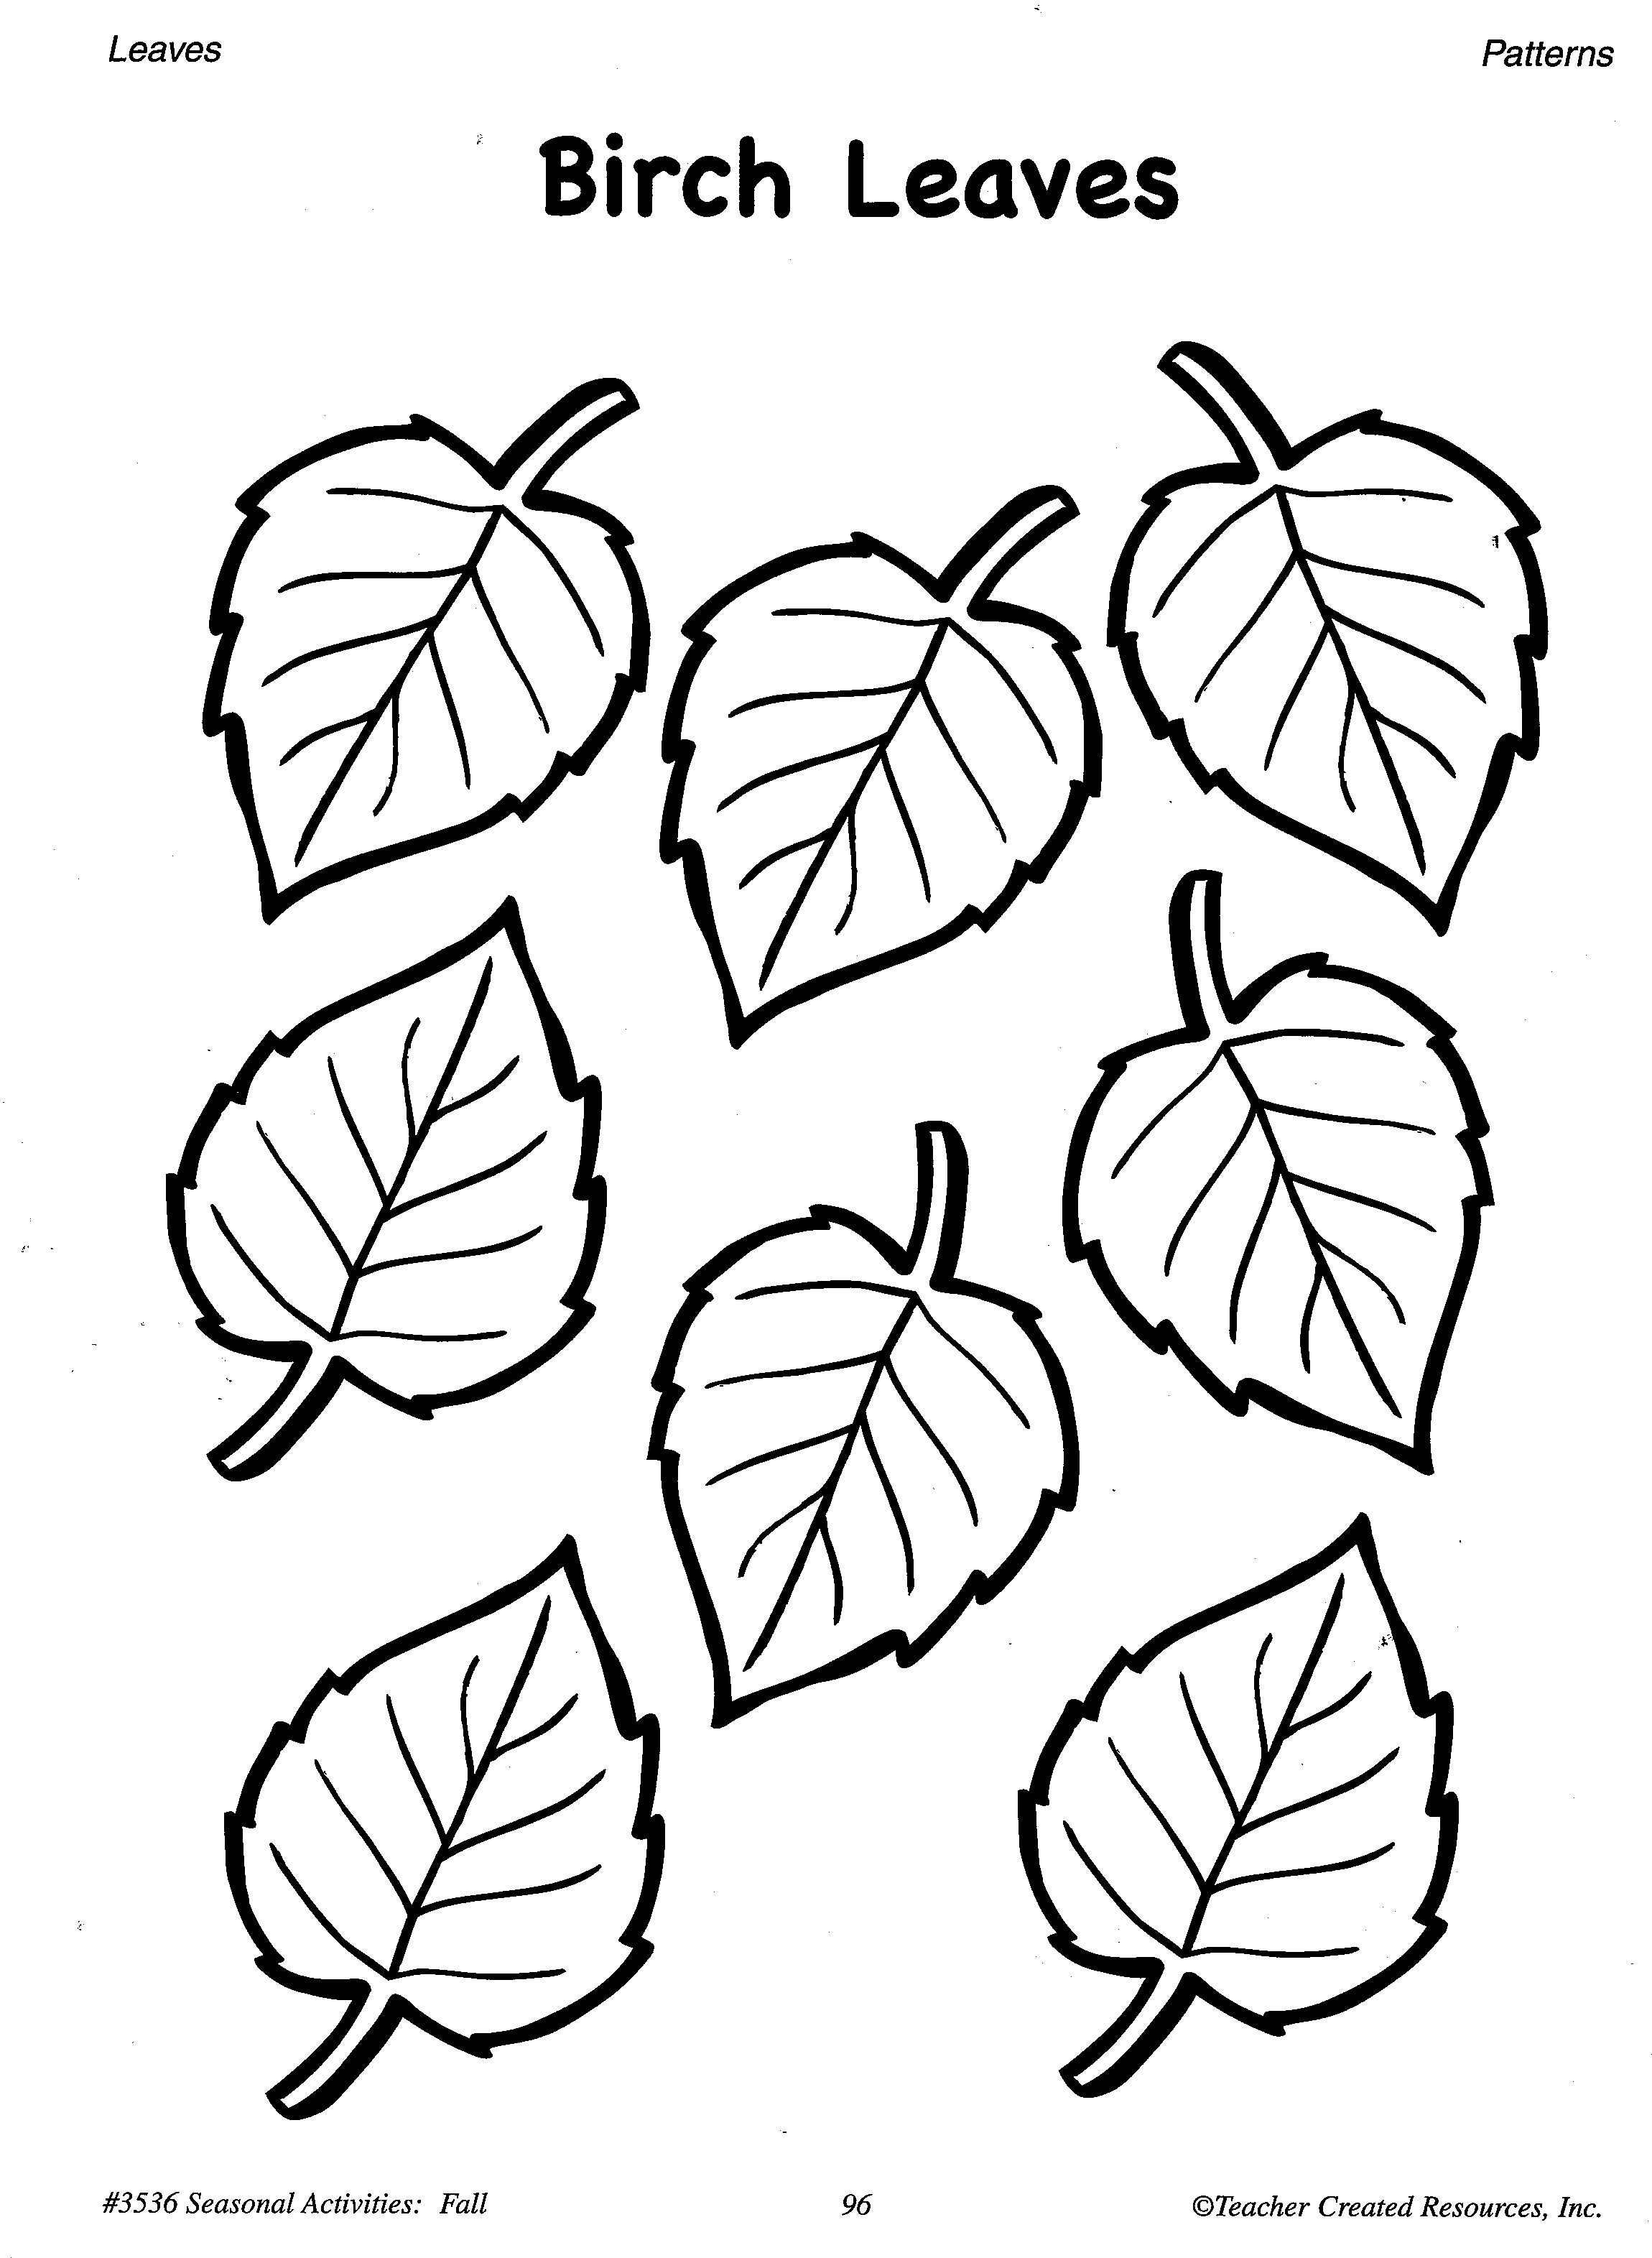 Printable Fall Leaves Patterns A Sample From The Teacher Resource